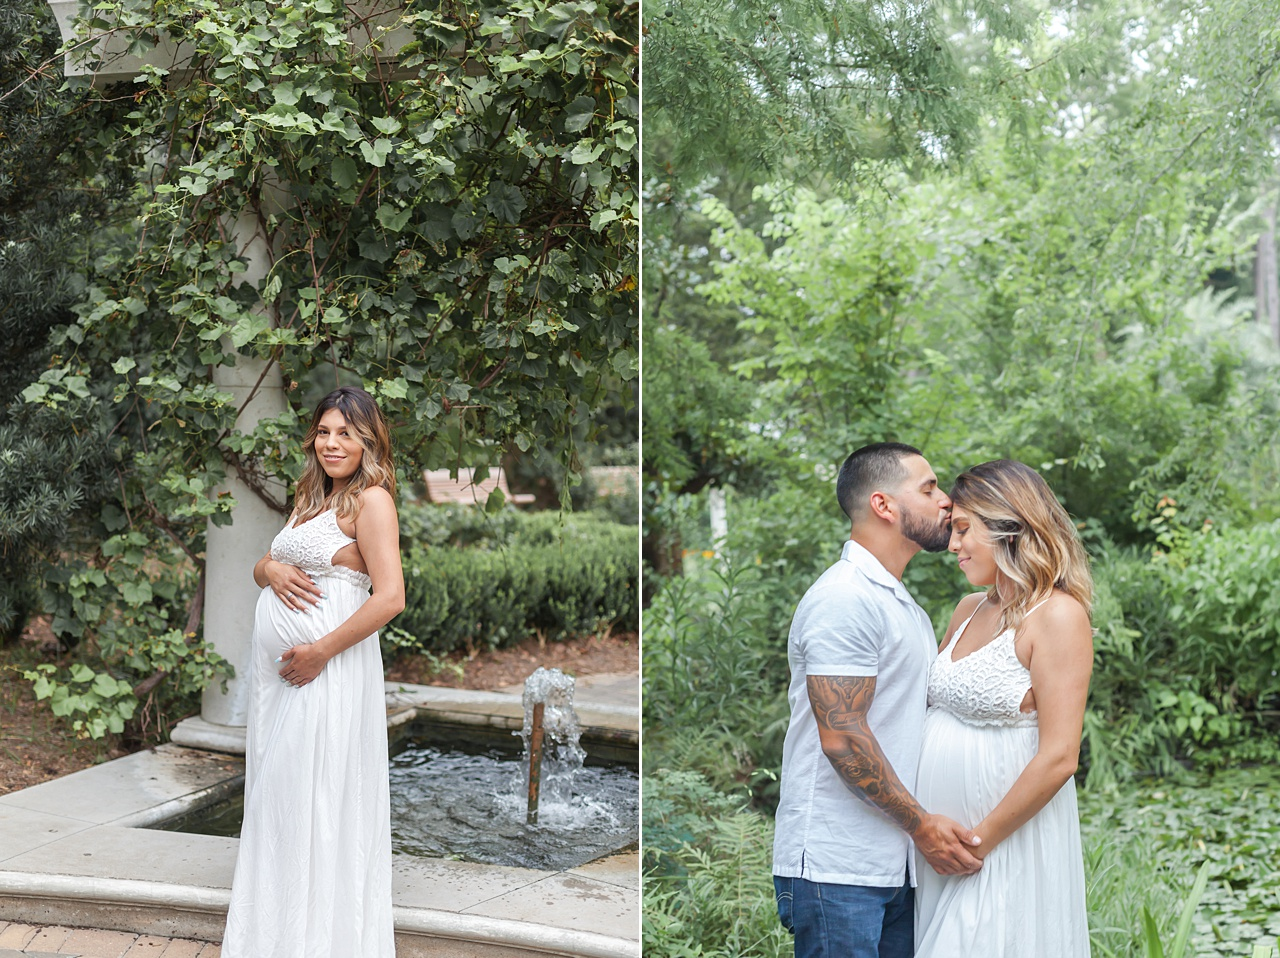 outdoor summer photo session in beautiful garden by kristal bean photography